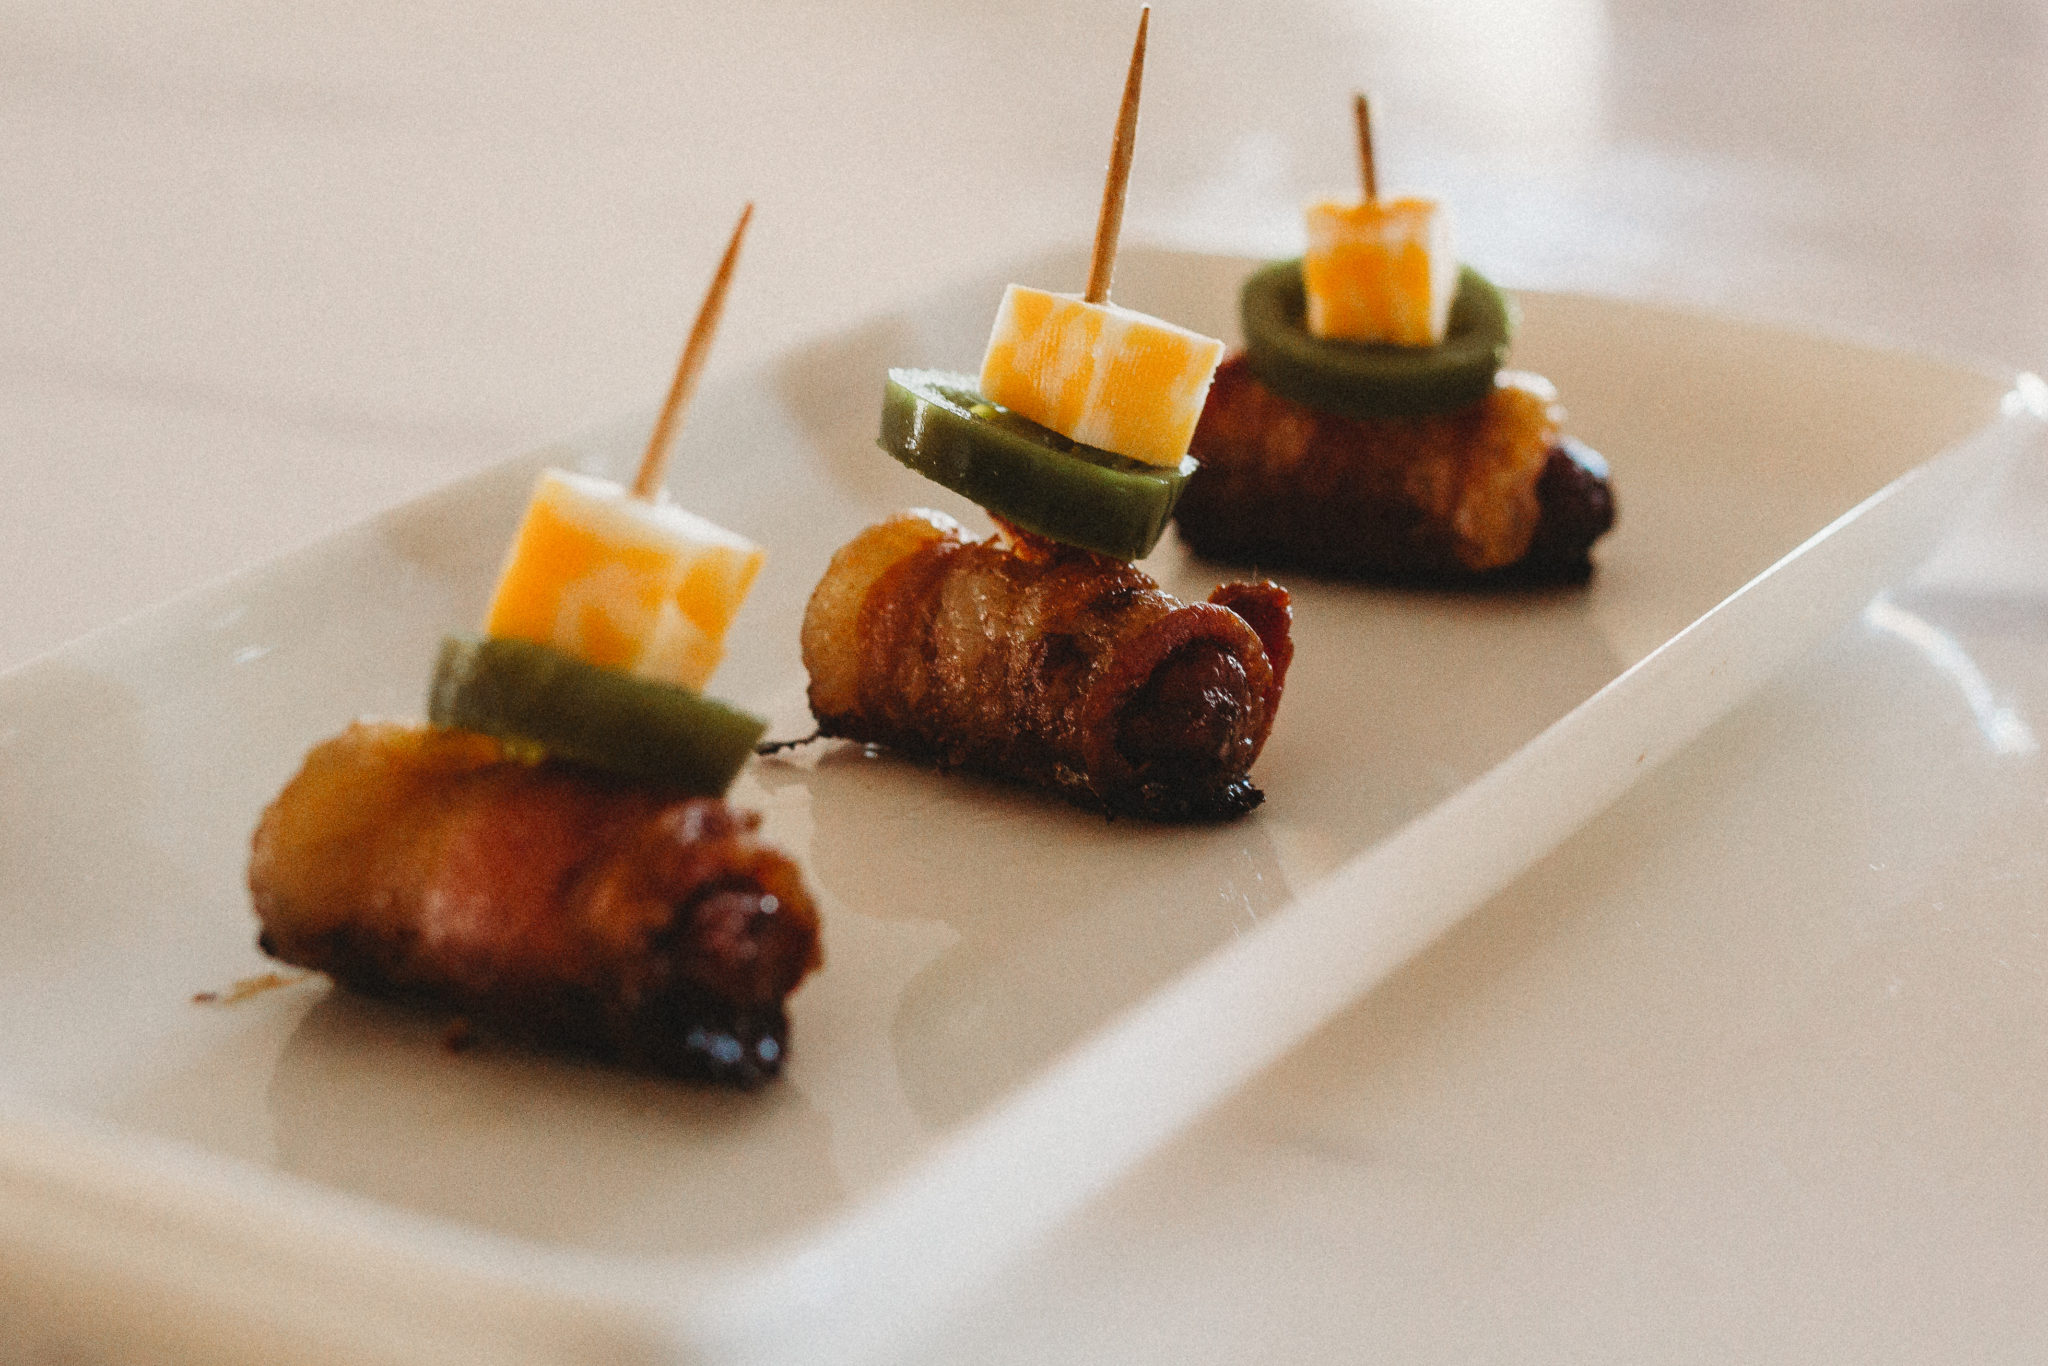 Celebrate the Big Game with quick and easy appetizers like this fun take on the jalapeno popper using Litl Smokies sausages wrapped in bacon and topped with cheddar cheese and jalapeno. #ad #TysonWinningLineup #Walmart